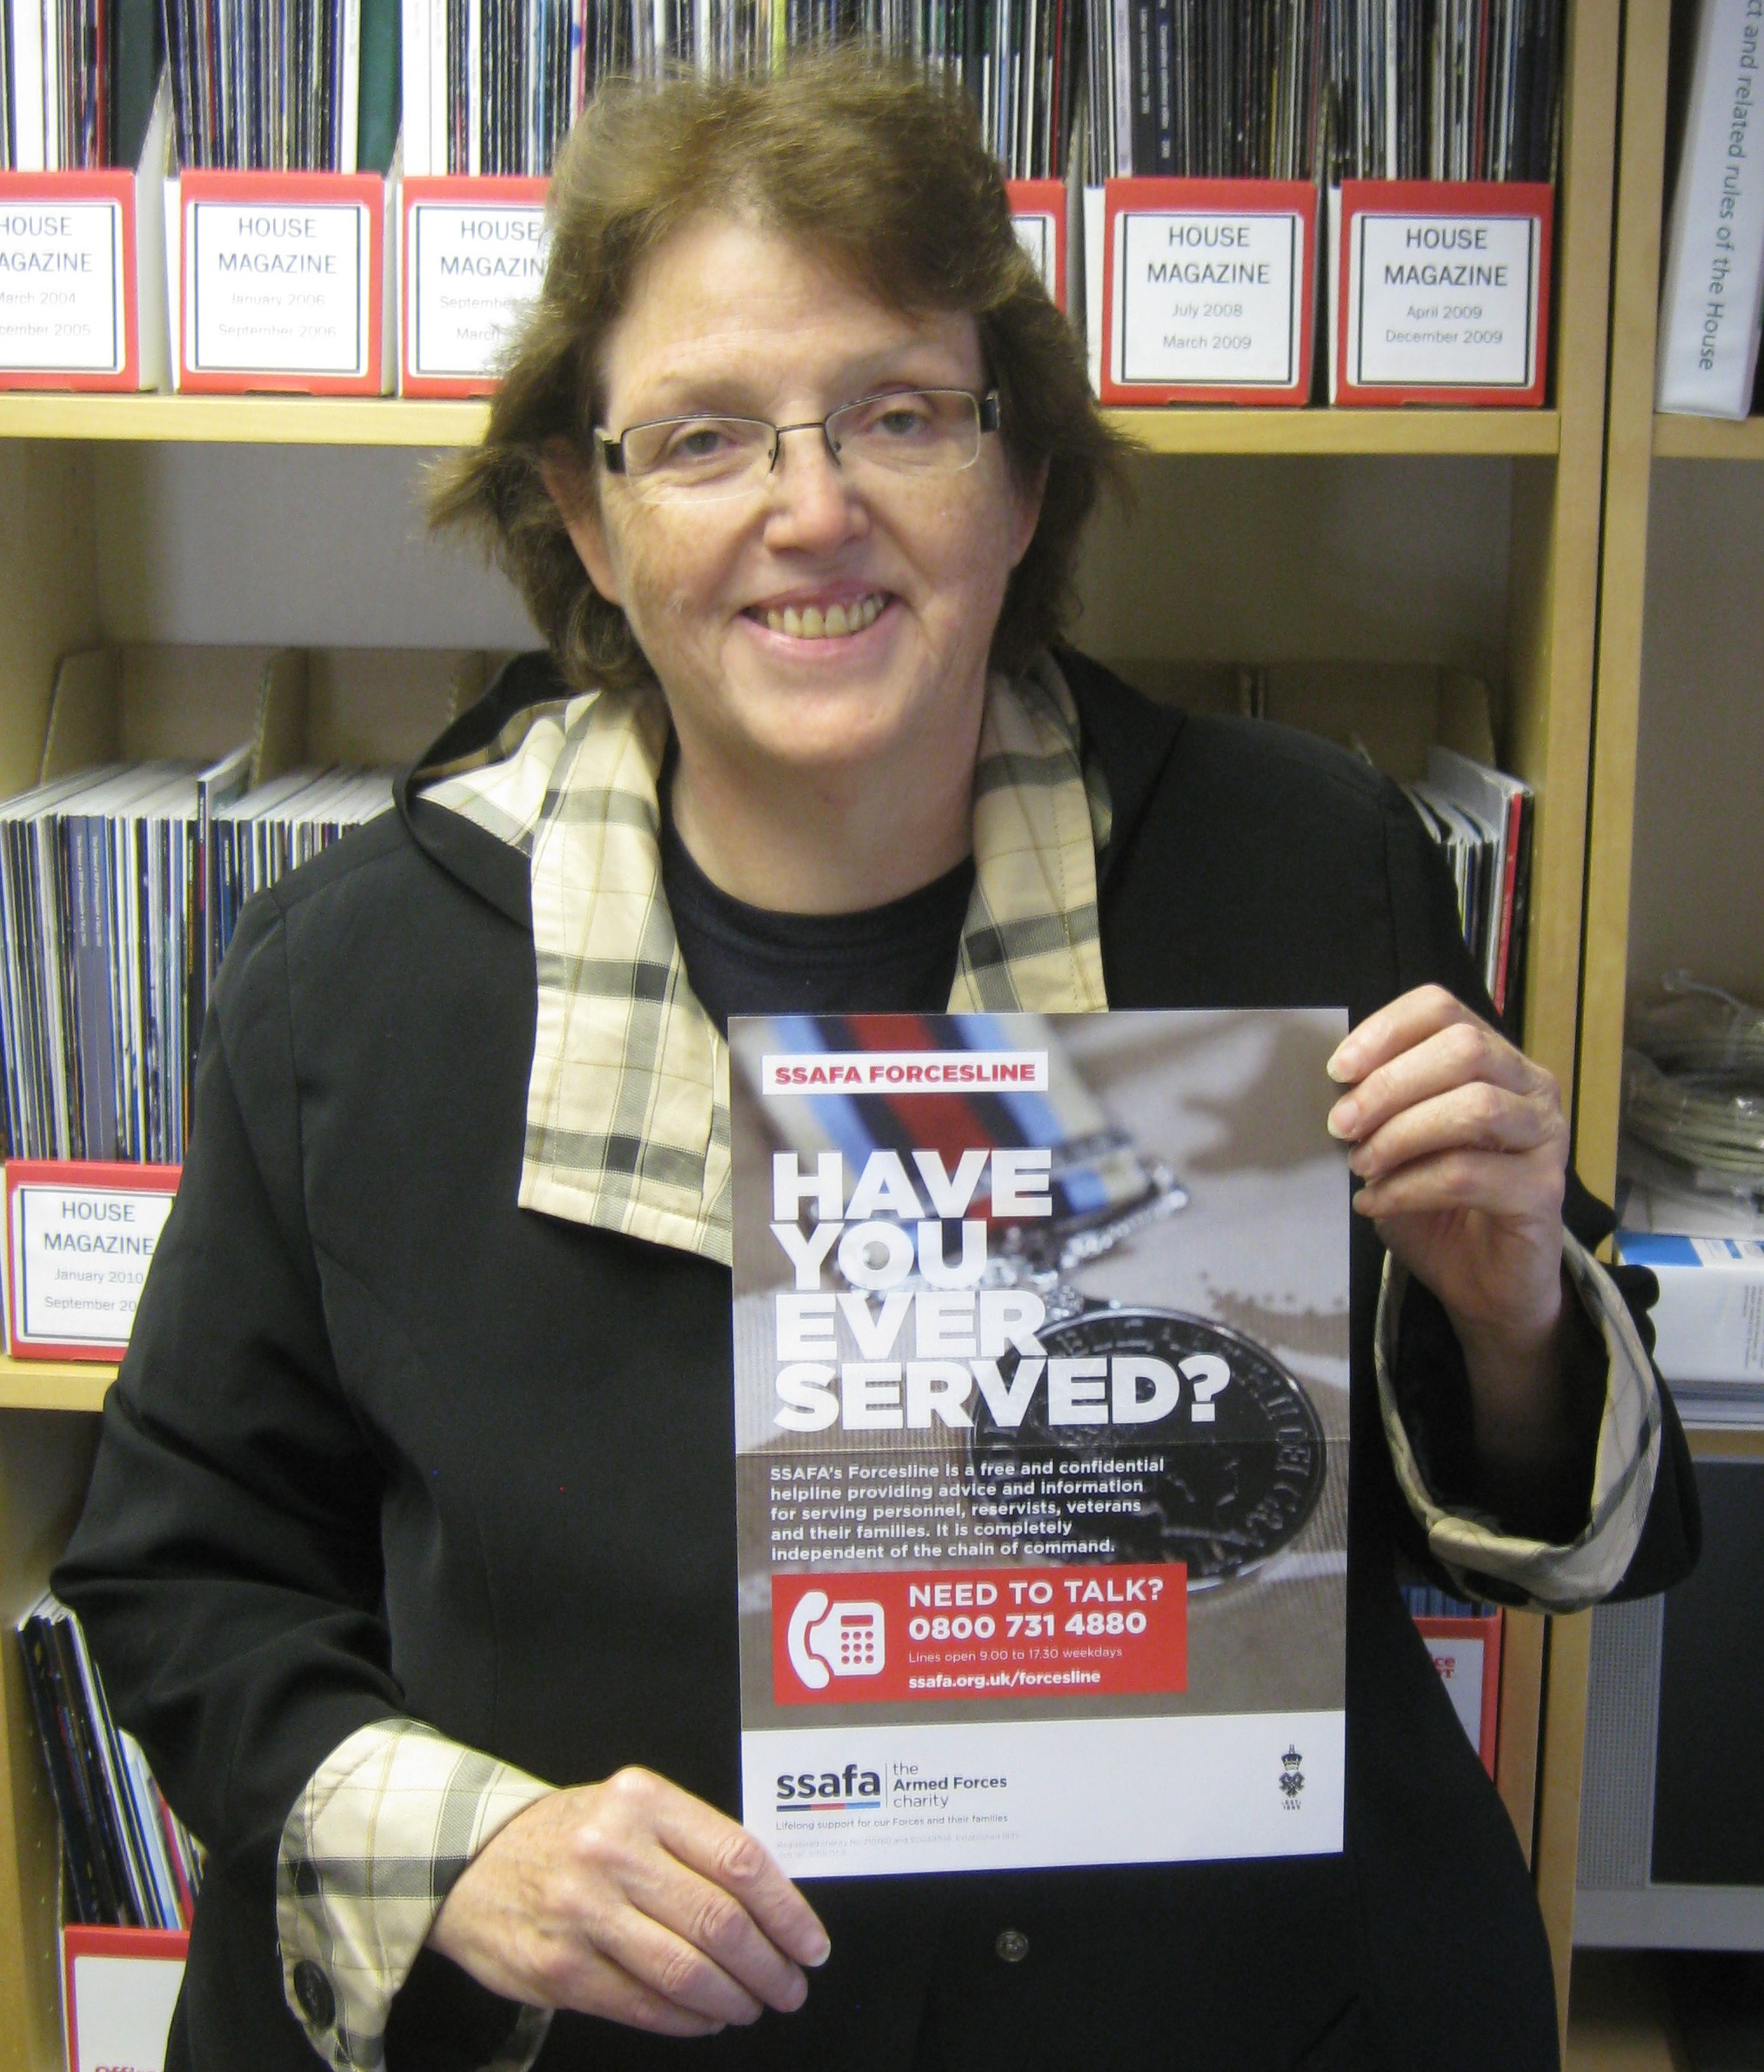 Rosie_Cooper_MP_with_SSAFA_poster.JPG